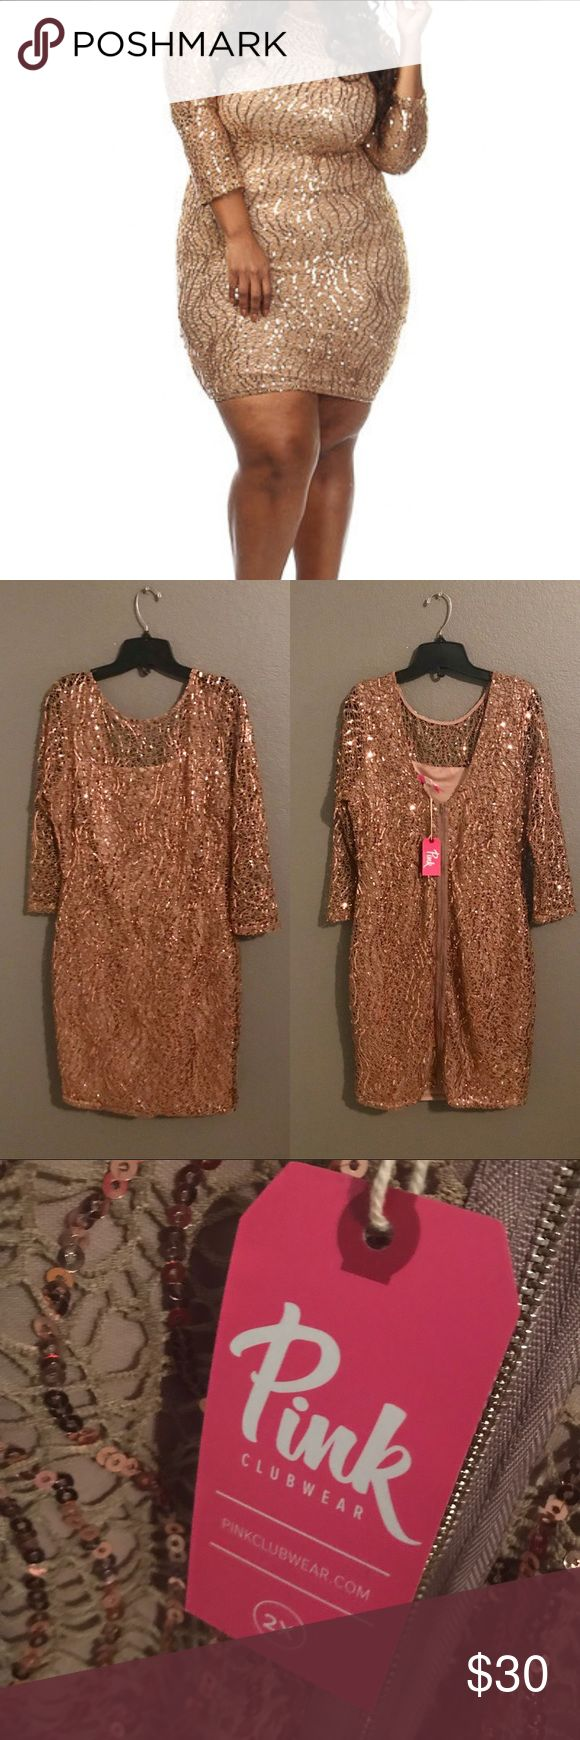 Gold Dress Pink Clubwear Gold Dress NEW W/Tag 2XL Pink Clubwear Dresses Midi